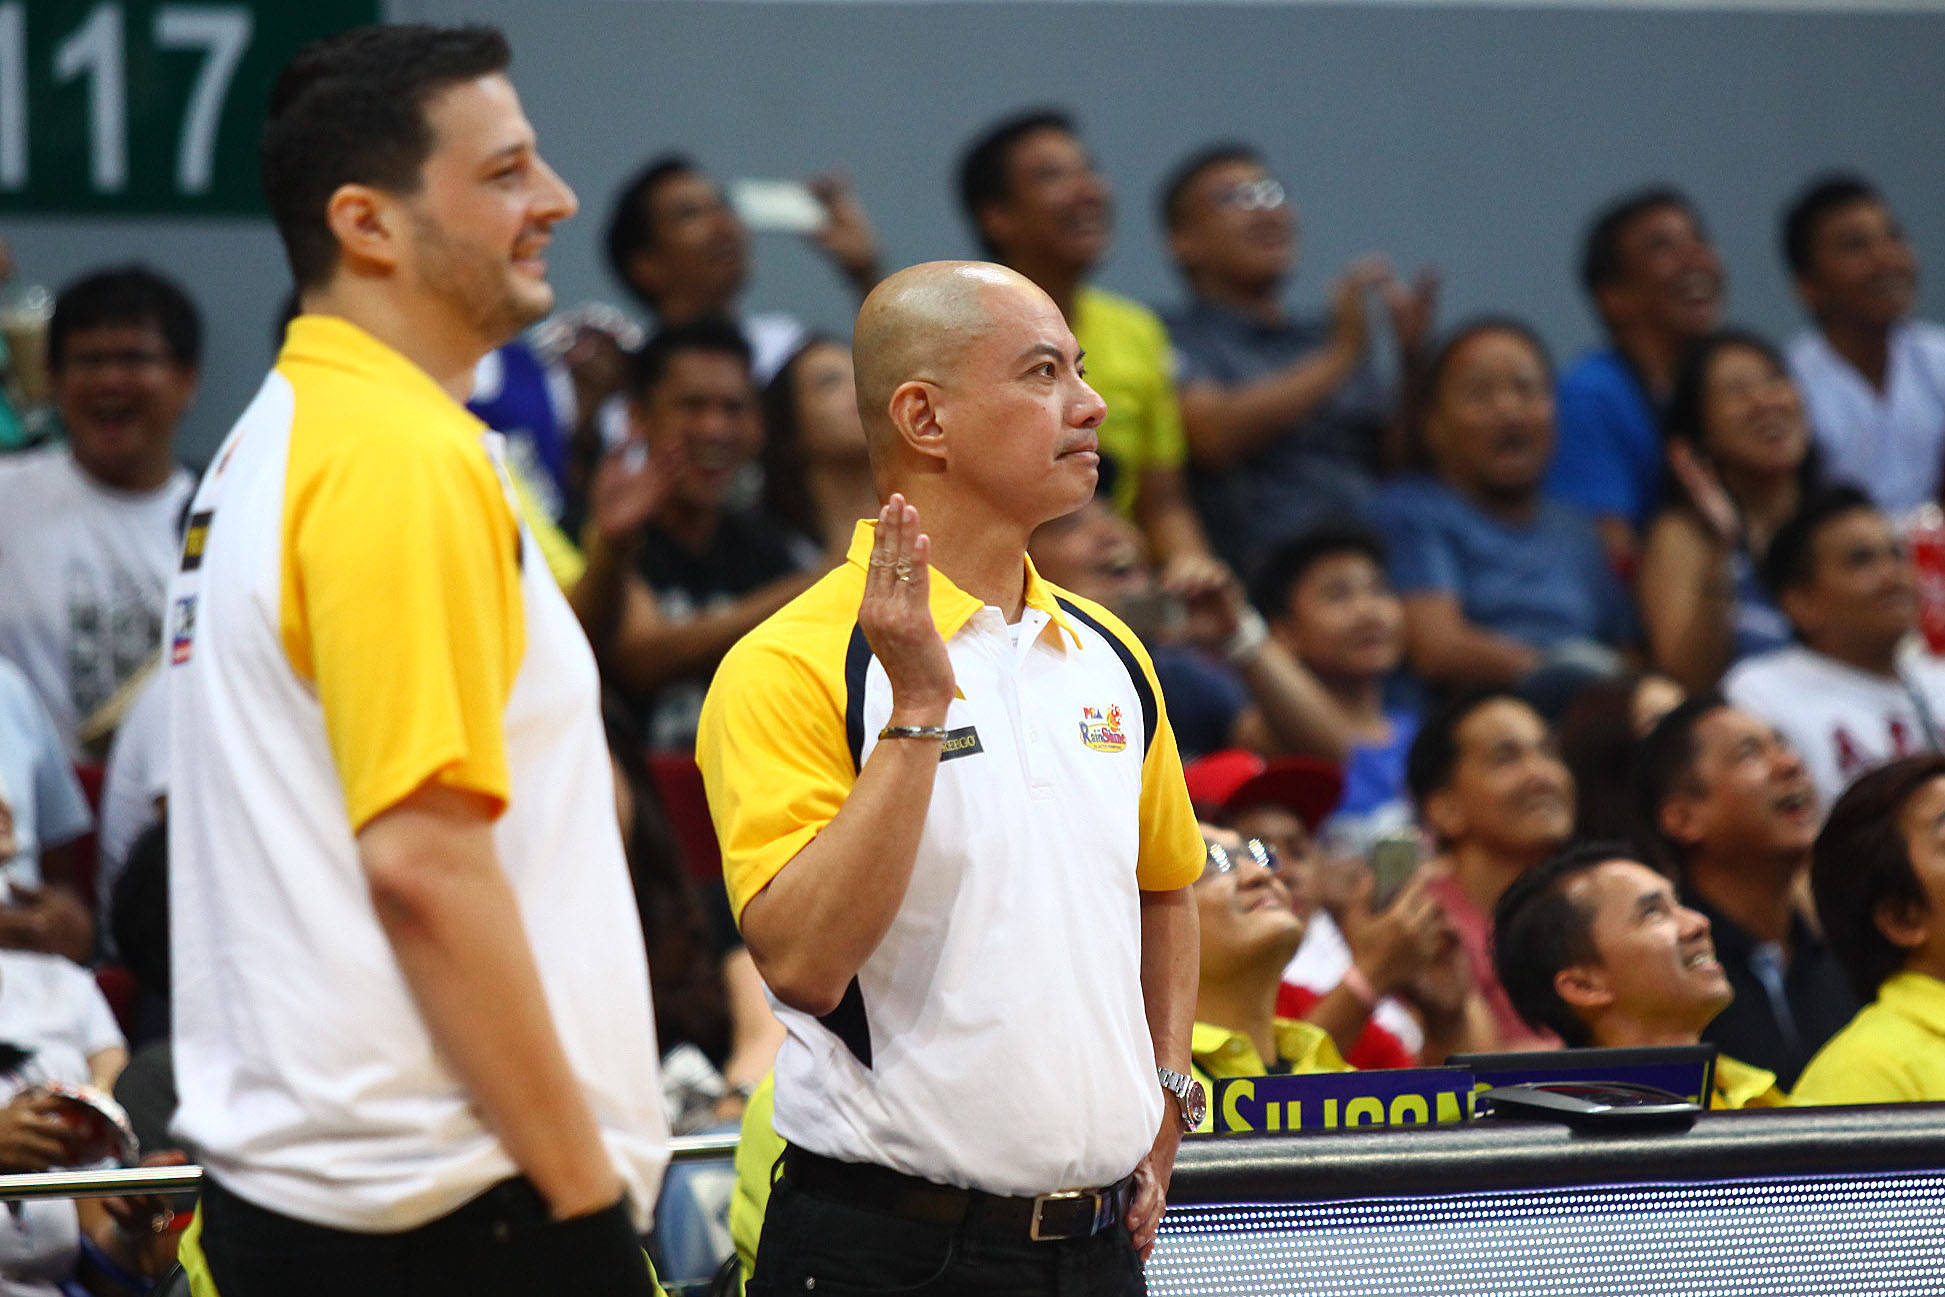 PABEBE WAVE. Rain or Shine coach Yeng Guiao sparks laughter as he did the popular u0022pabebe waveu0022 after the scuffle with Chris Ross. The hand gesture was made popular by the u0022AlDubu0022 love team. Photo by Josh Albelda/Rappler